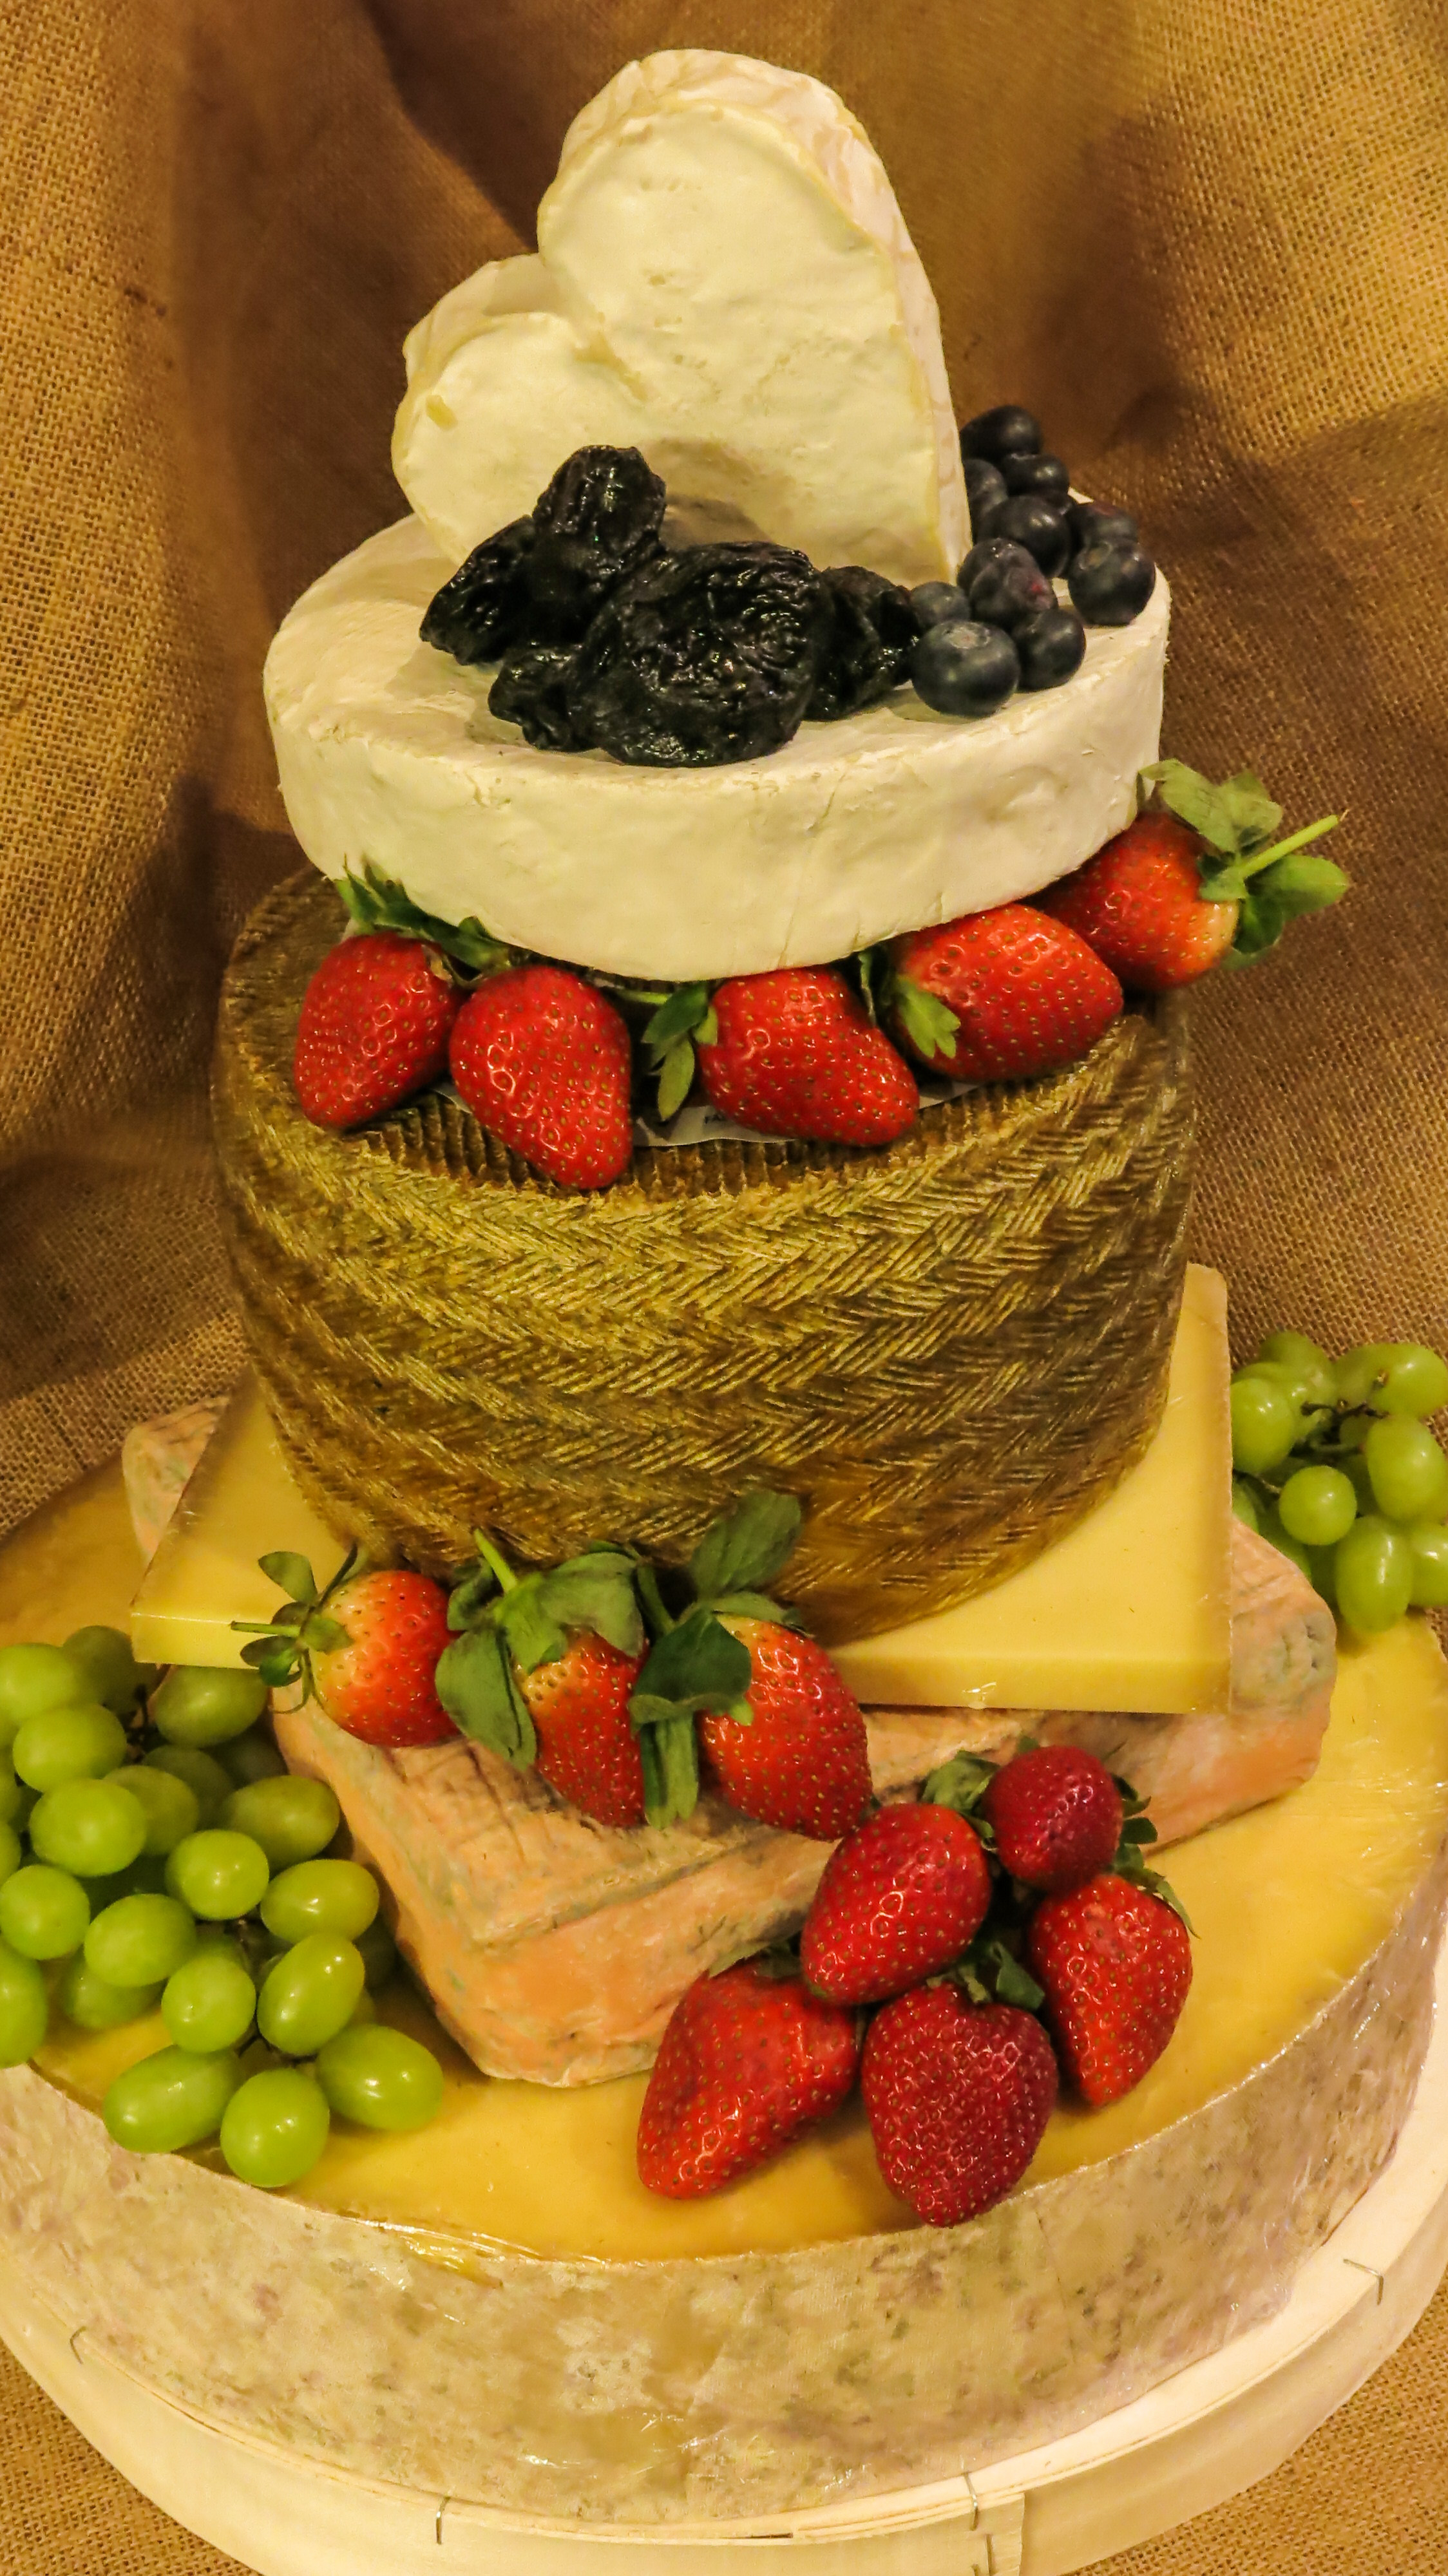 Holtwhites Bakery New! Cheese Wedding Cakes - Holtwhites Bakery